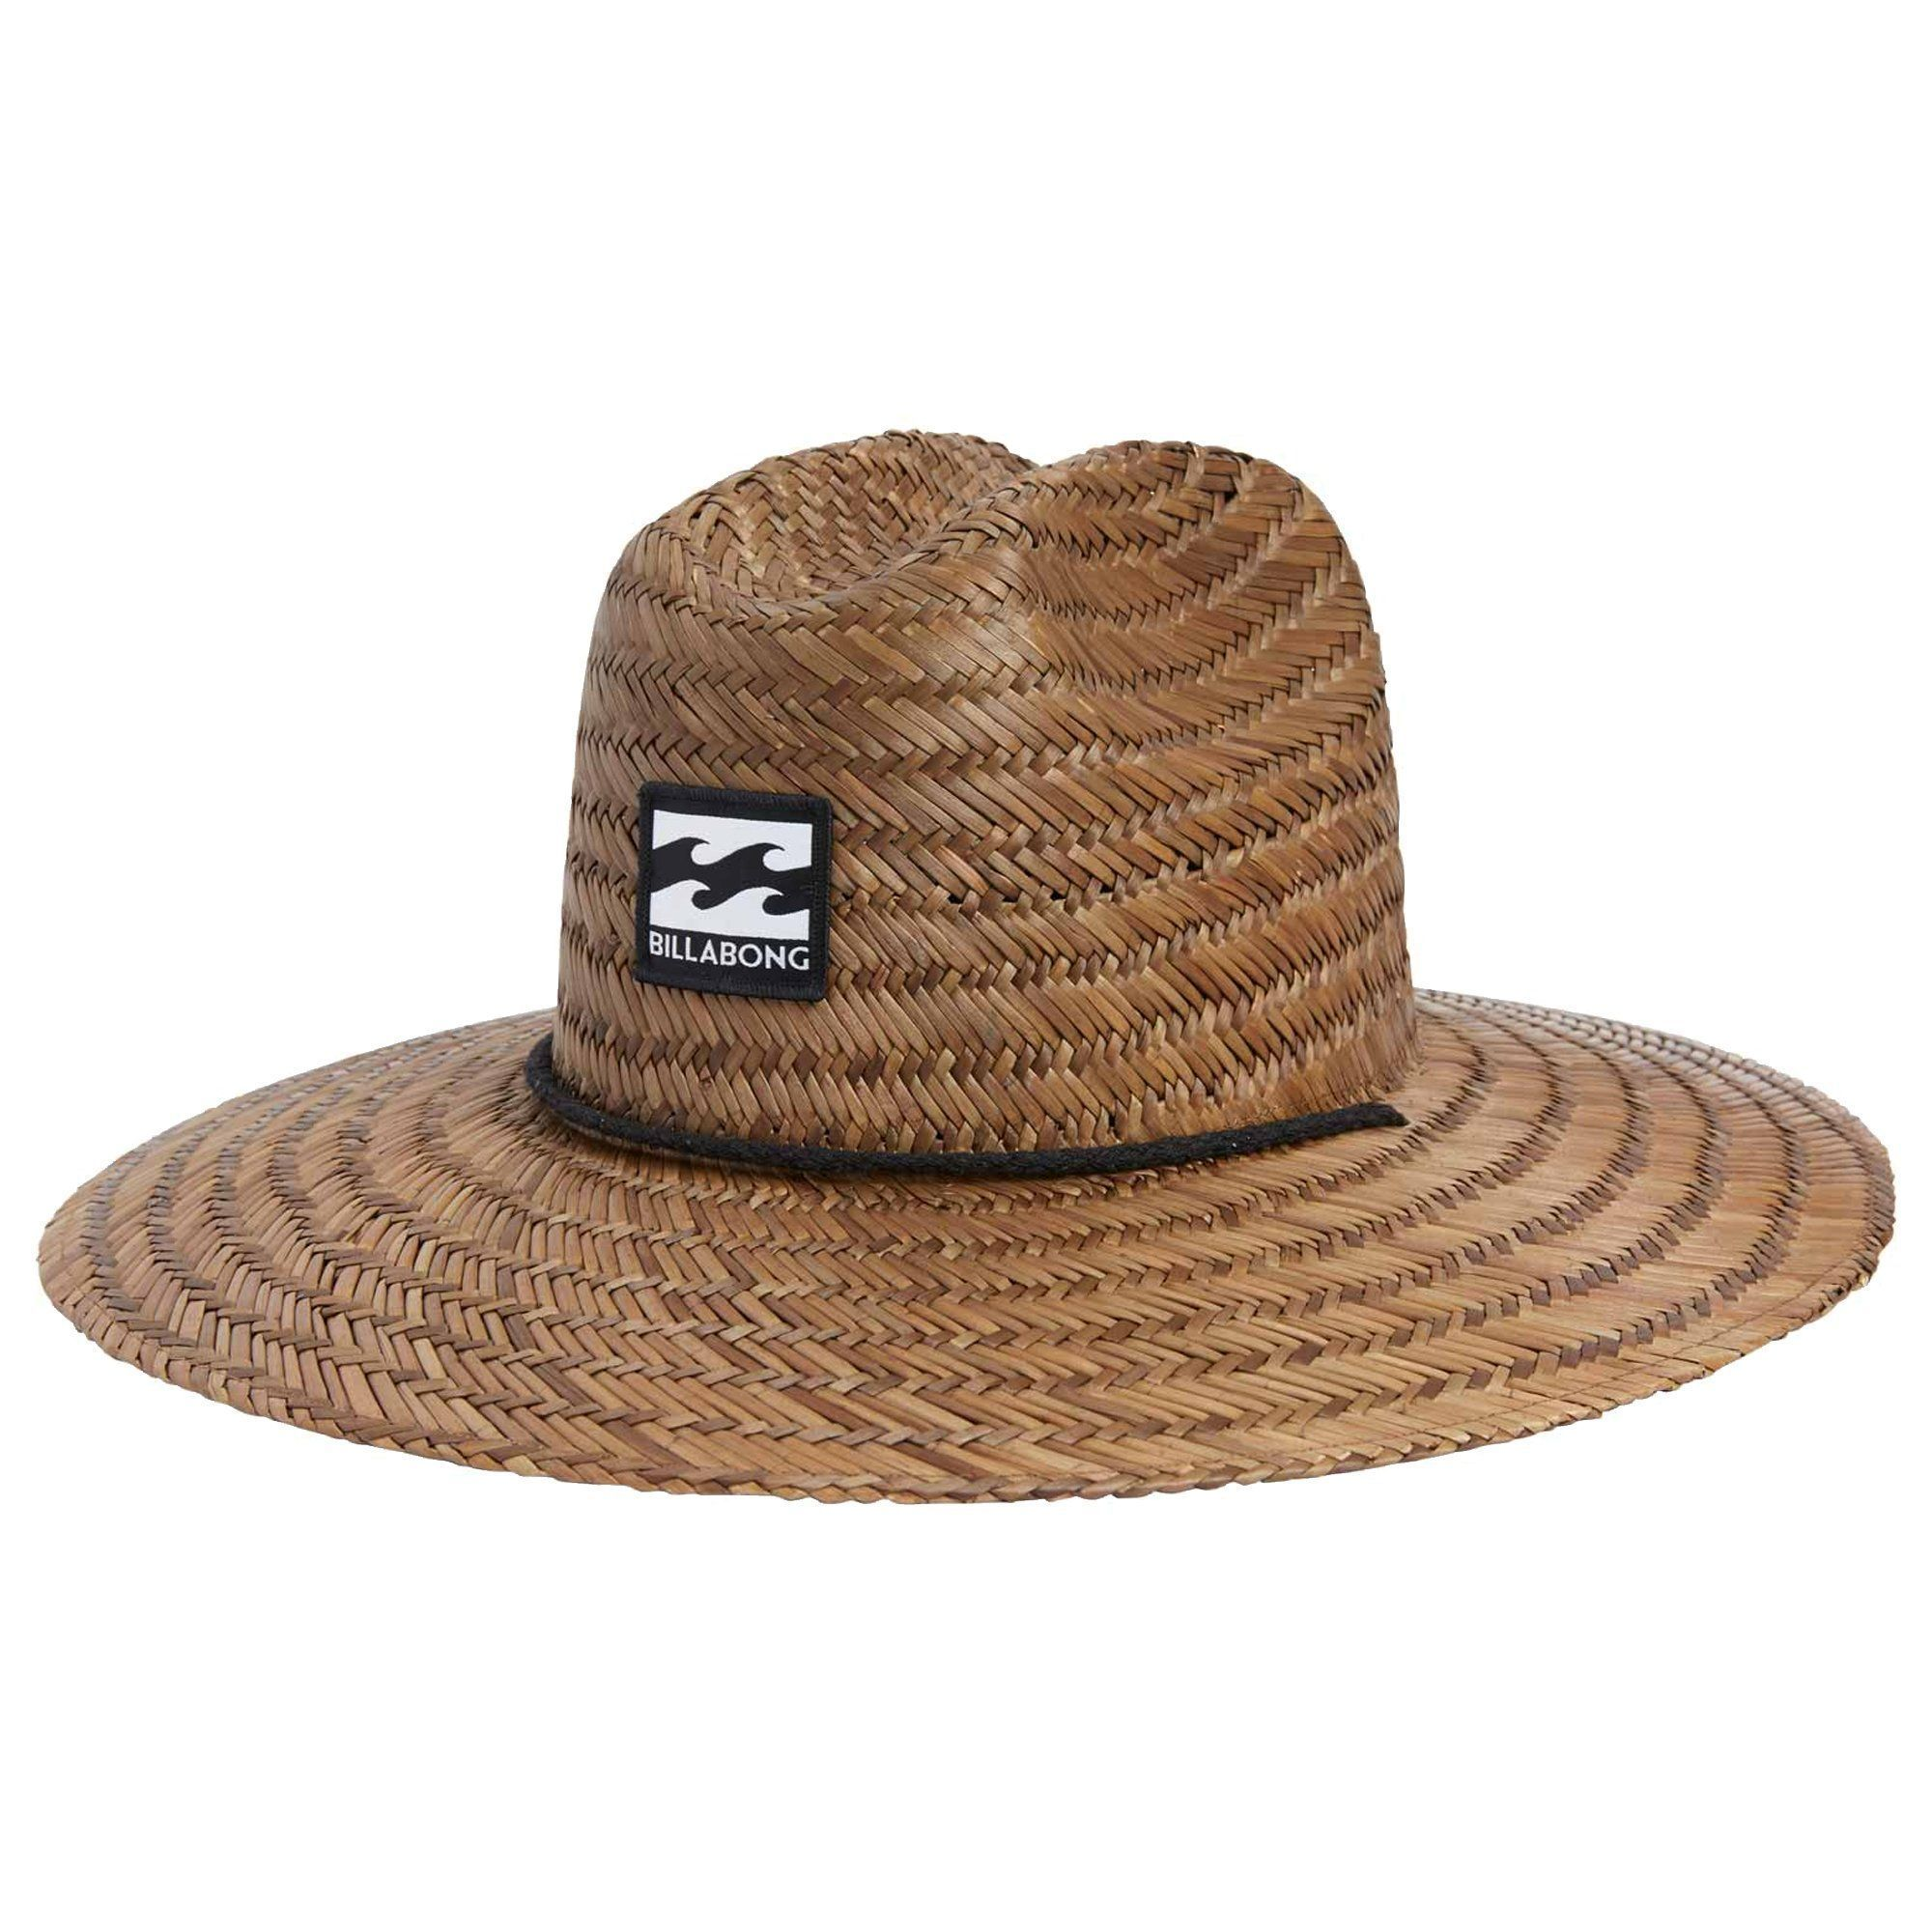 411d6b04d4c8c3 Get the most out of long beach days with this woven lifeguard hat. - Straw  lifeguard hat.